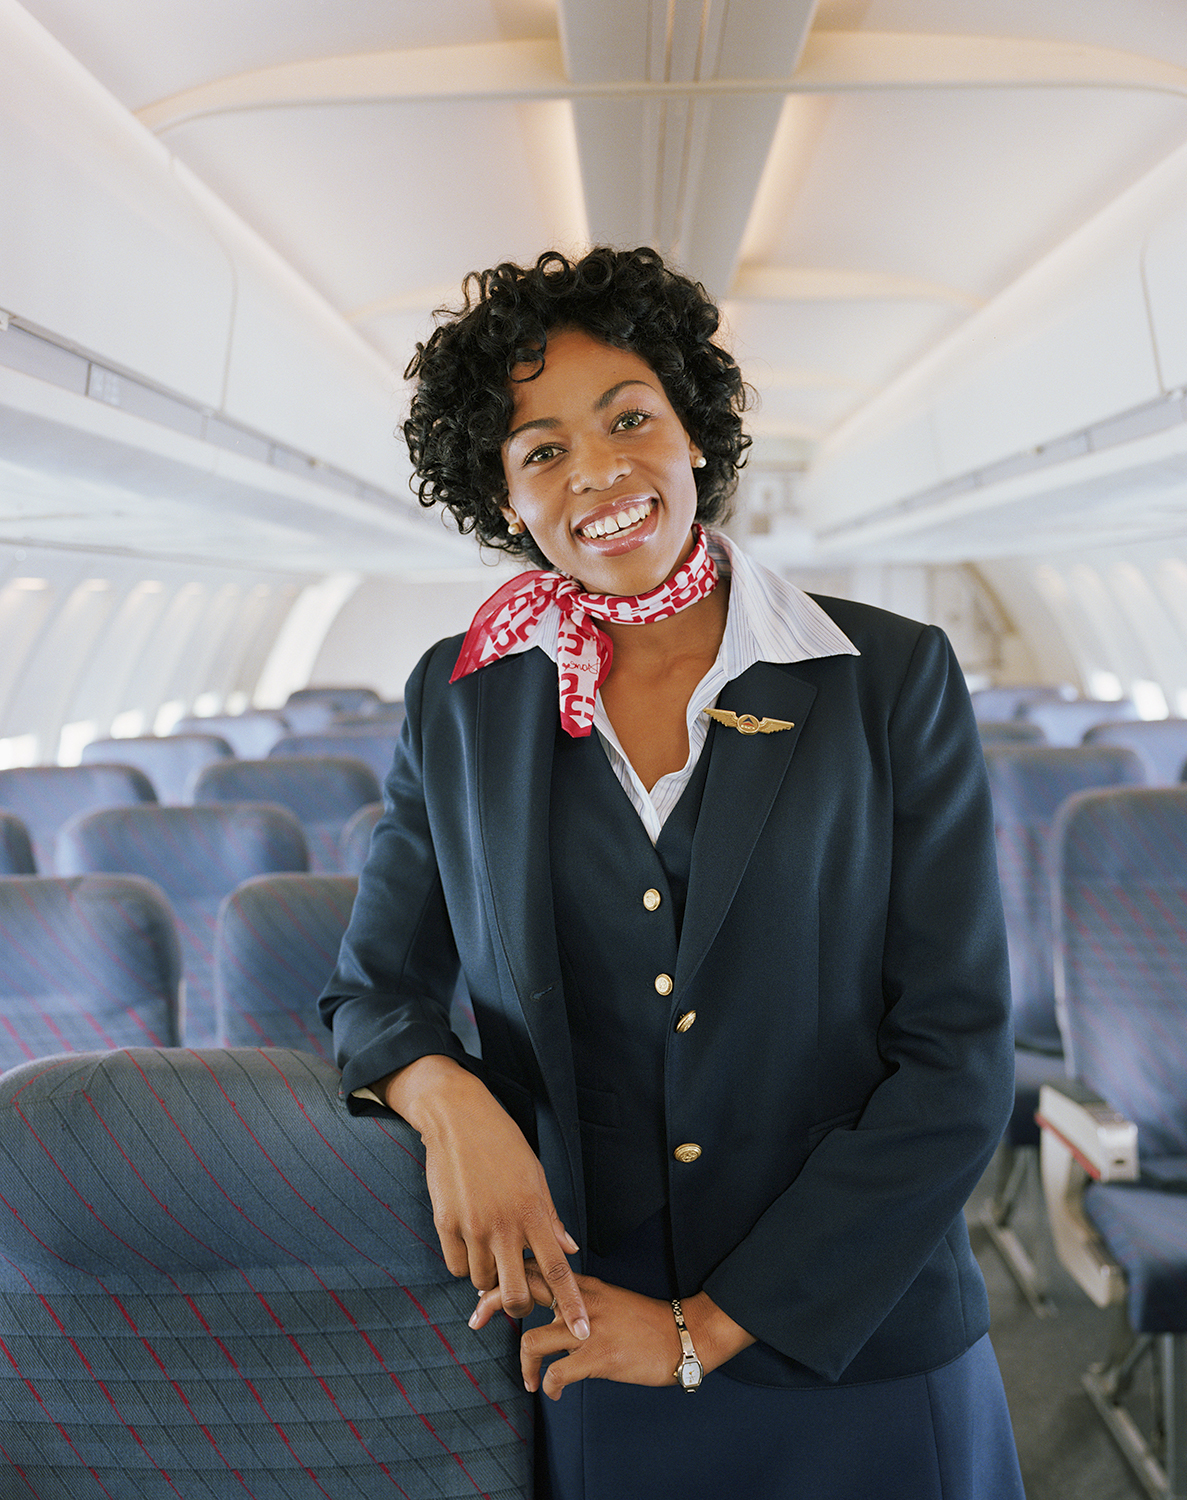 airline-flight-attendant